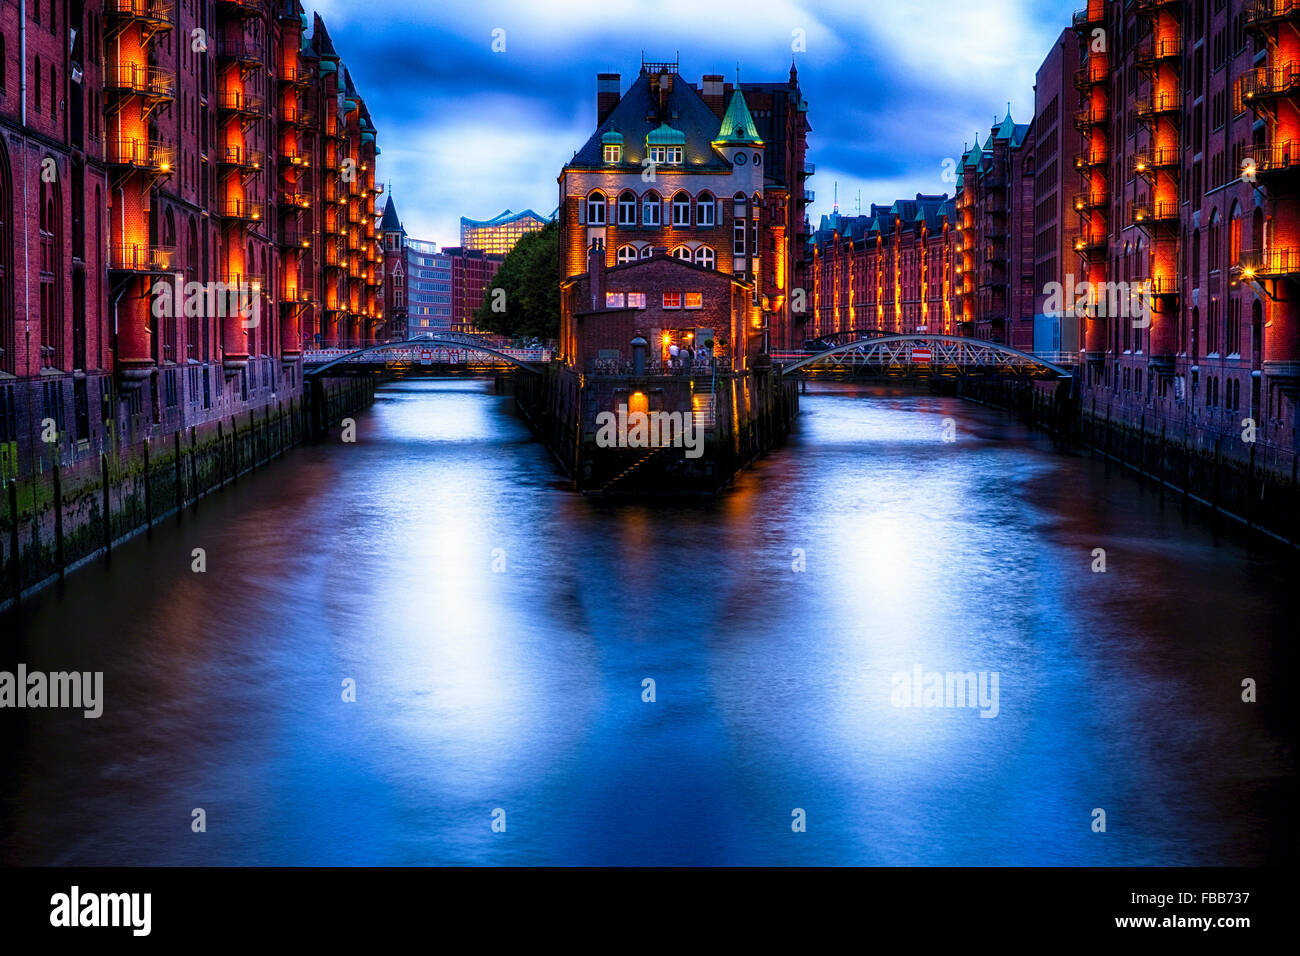 Water Castle Illuminated at Night in the Warehouse District in Hafen City, Hamburg, Germany - Stock Image